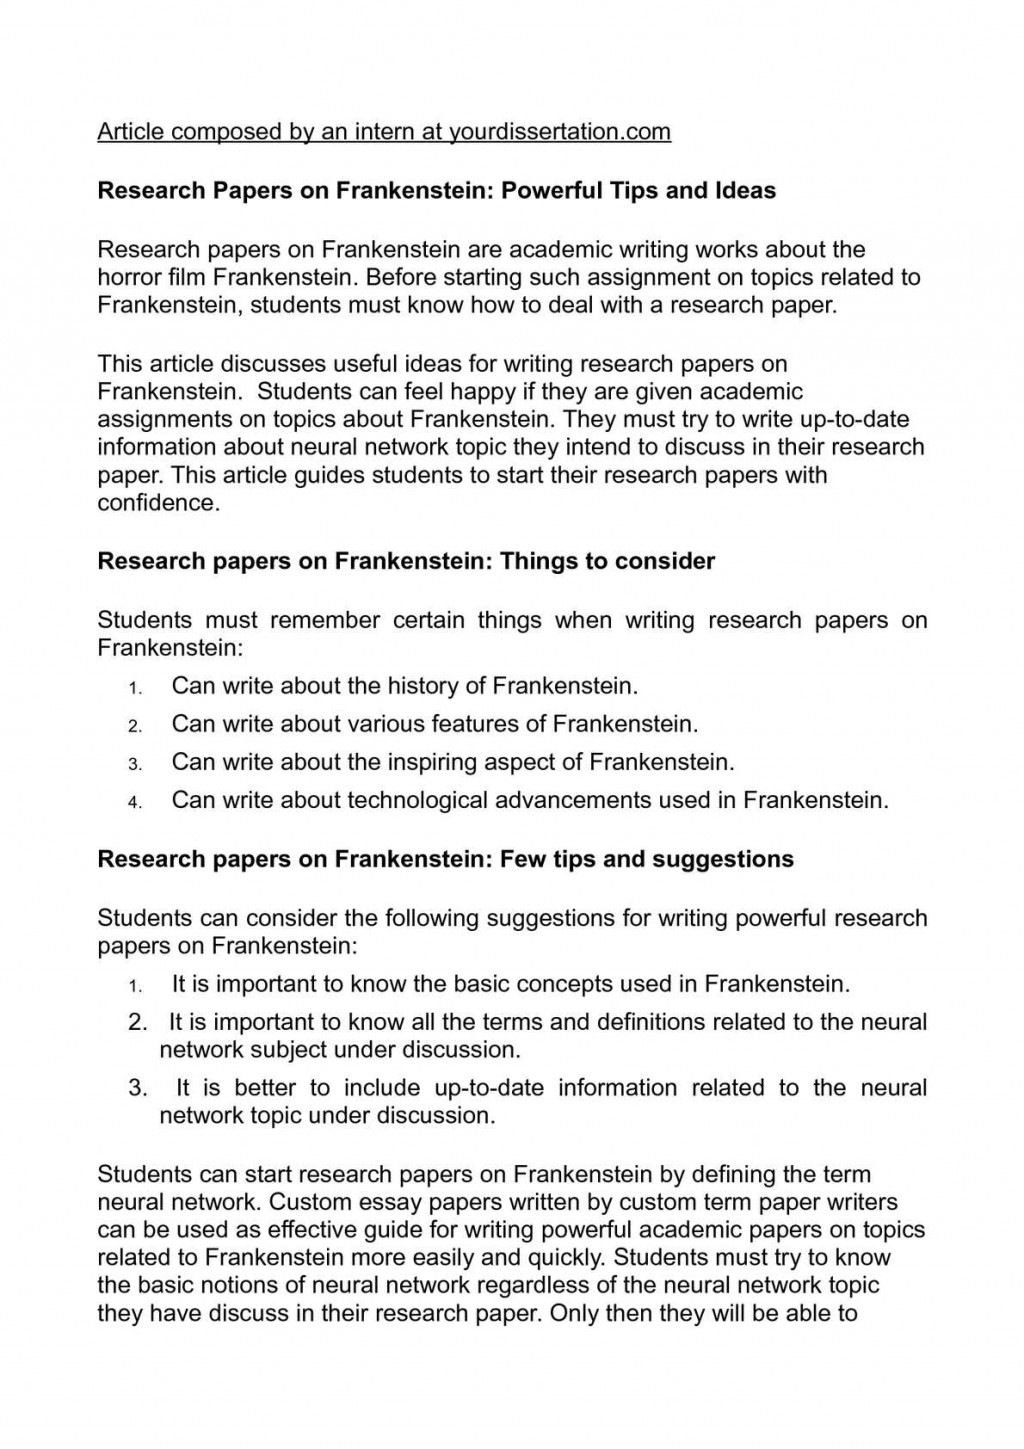 017 History Topics To Write Research Paper Breathtaking A Large